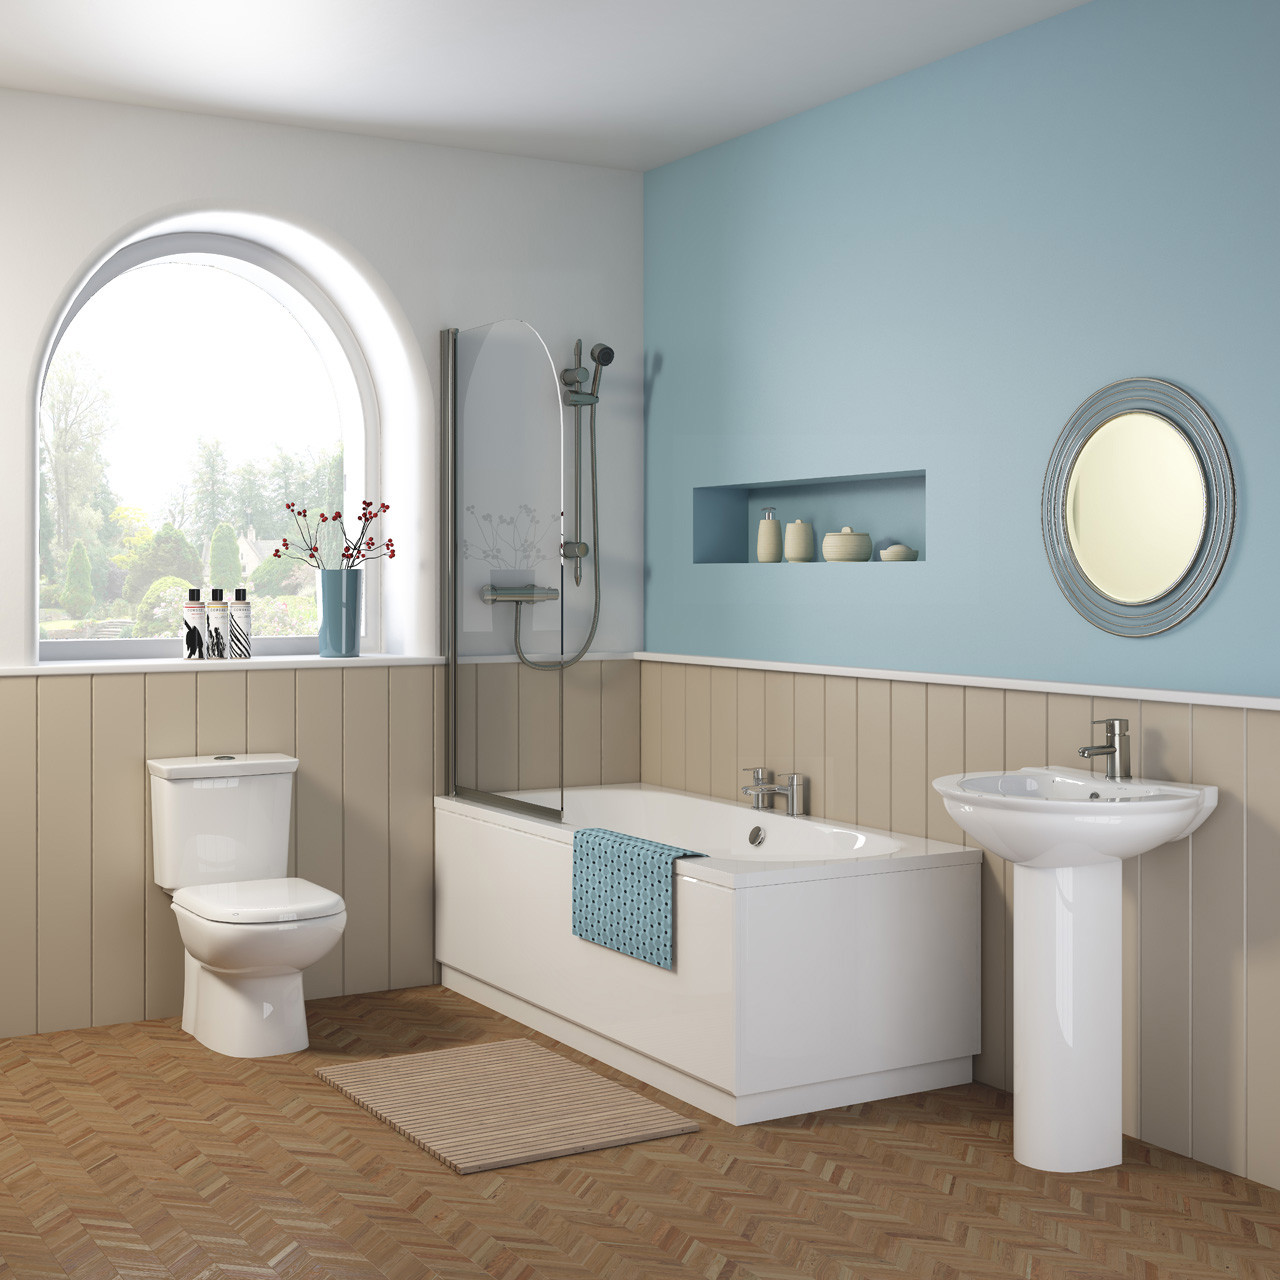 Nuie Otley 1800mm x 800mm Round Double Ended Bath - NBA514